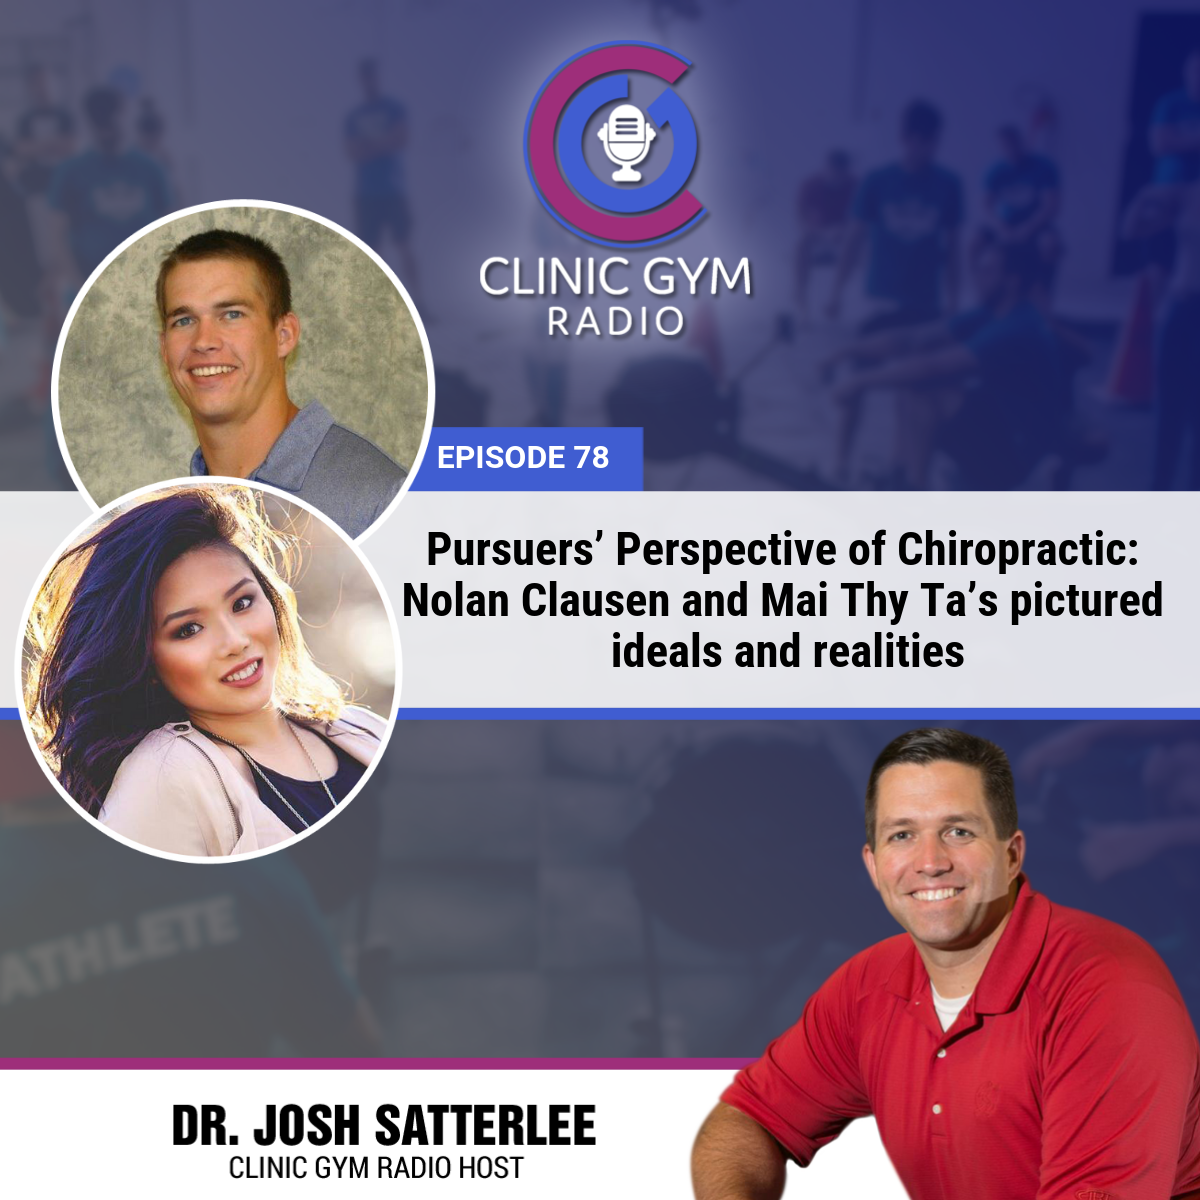 Pursuers' Perspective of Chiropractic: Nolan Clausen and Mai Thy Ta's pictured ideals and realities